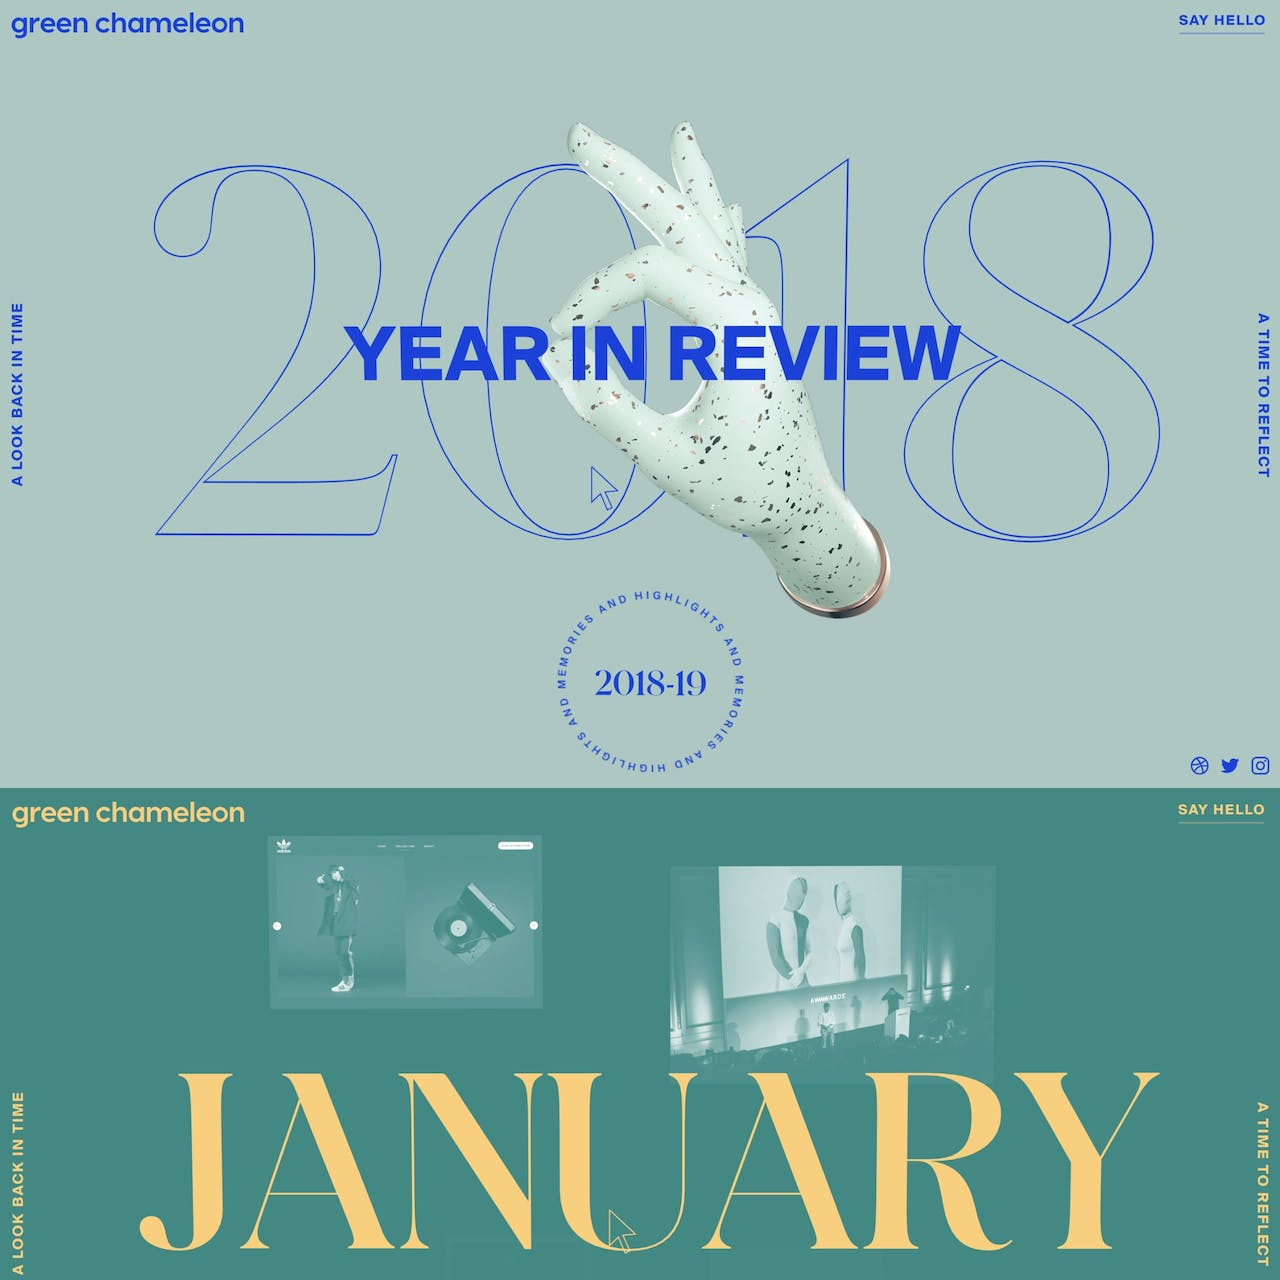 Green Chameleon 2018 Year in Review Website Screenshot